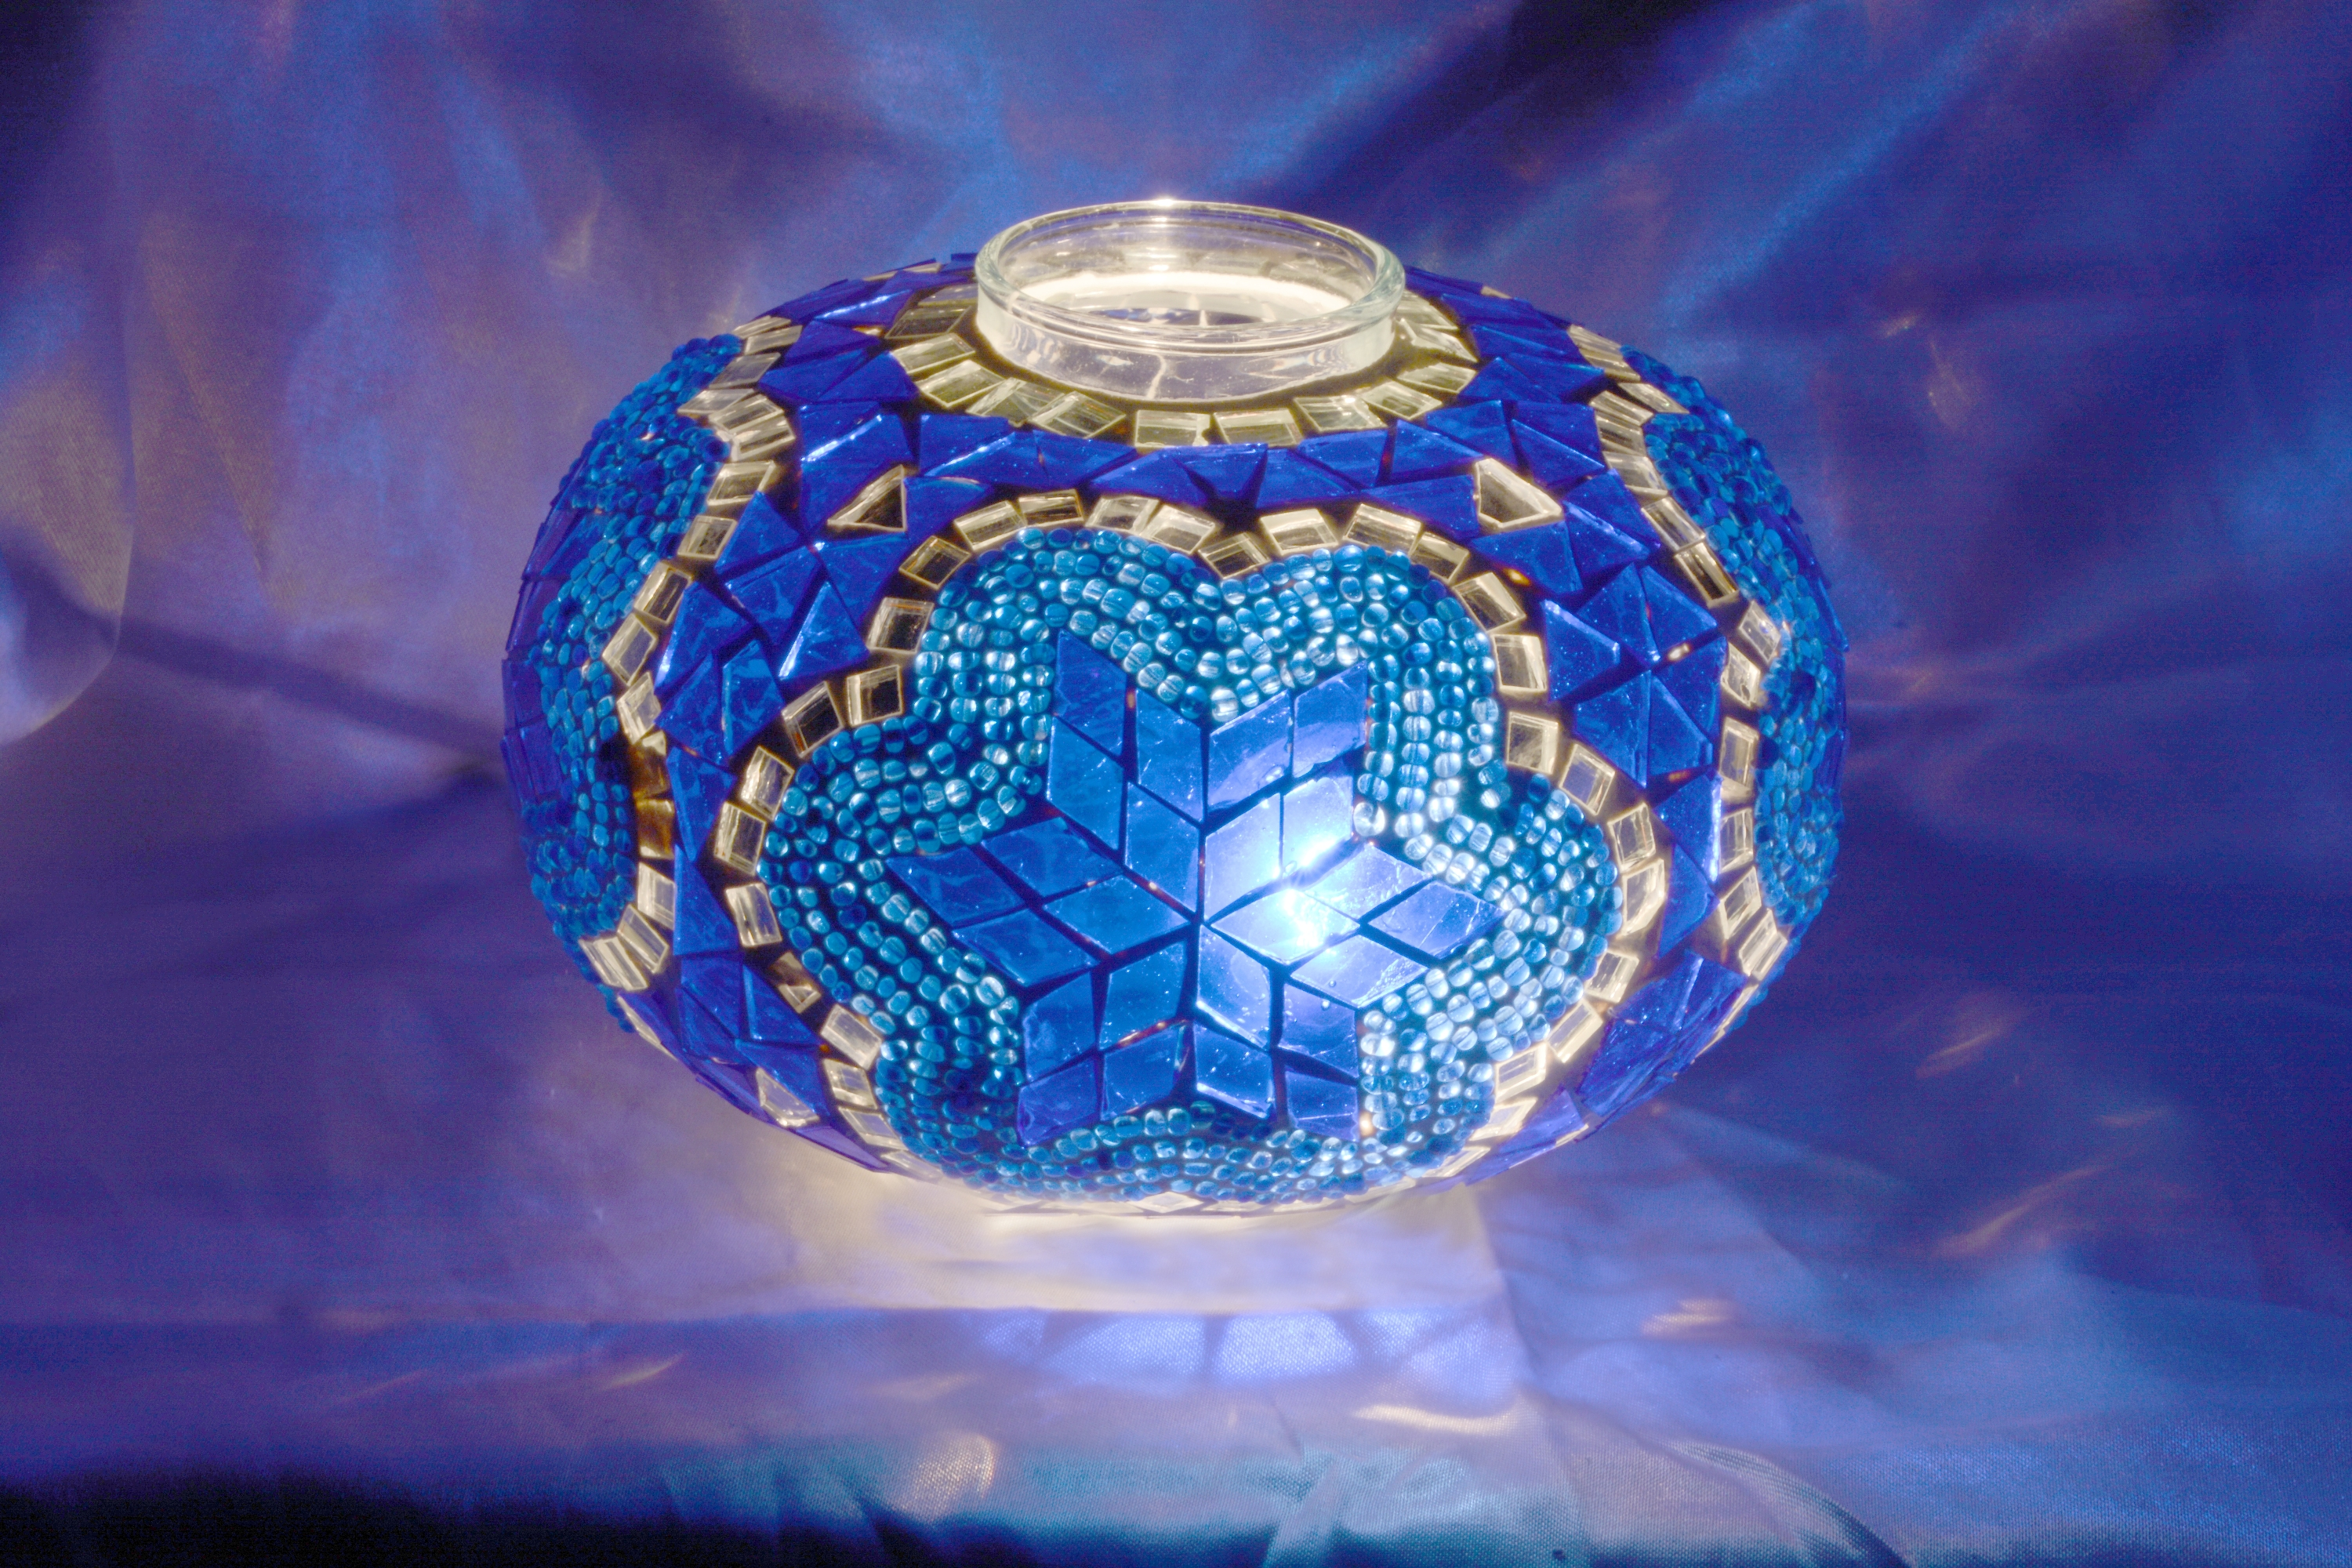 Size 3 mosaic lamp model